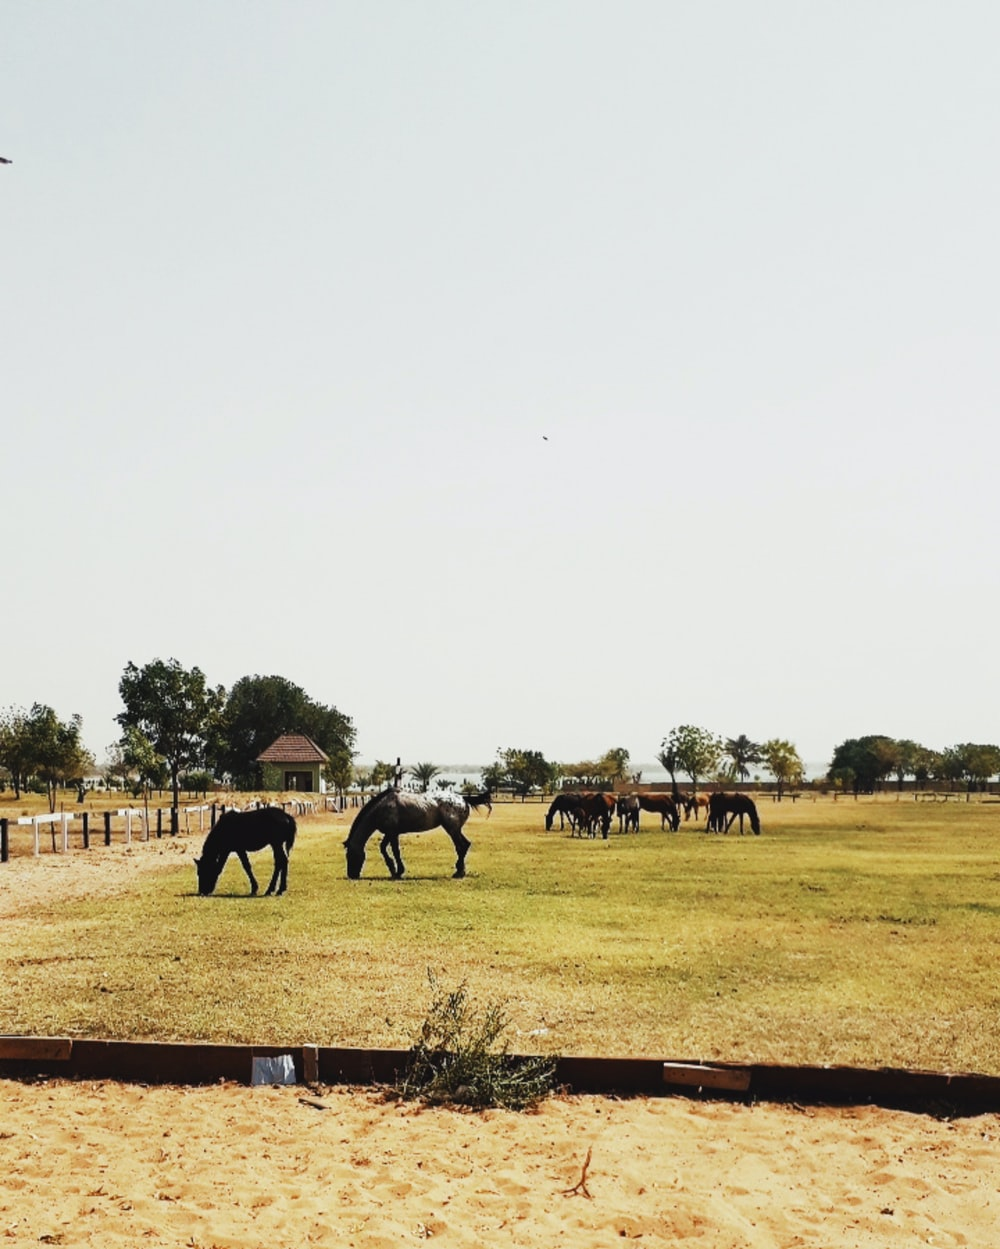 horses at the farm during daytime